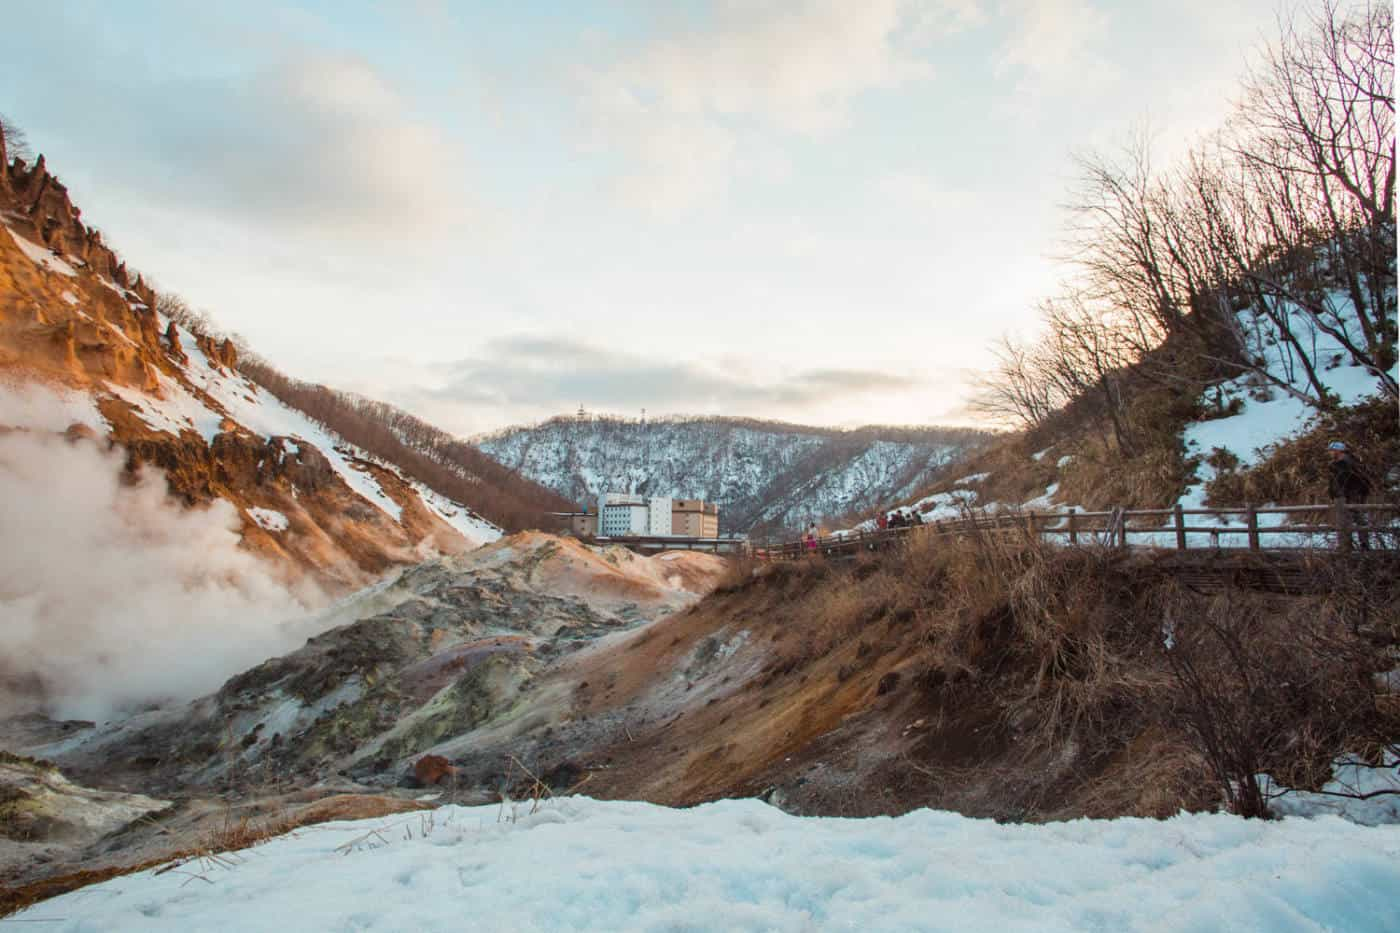 When is the best time to visit Hokkaido? | Japan Travel Guides